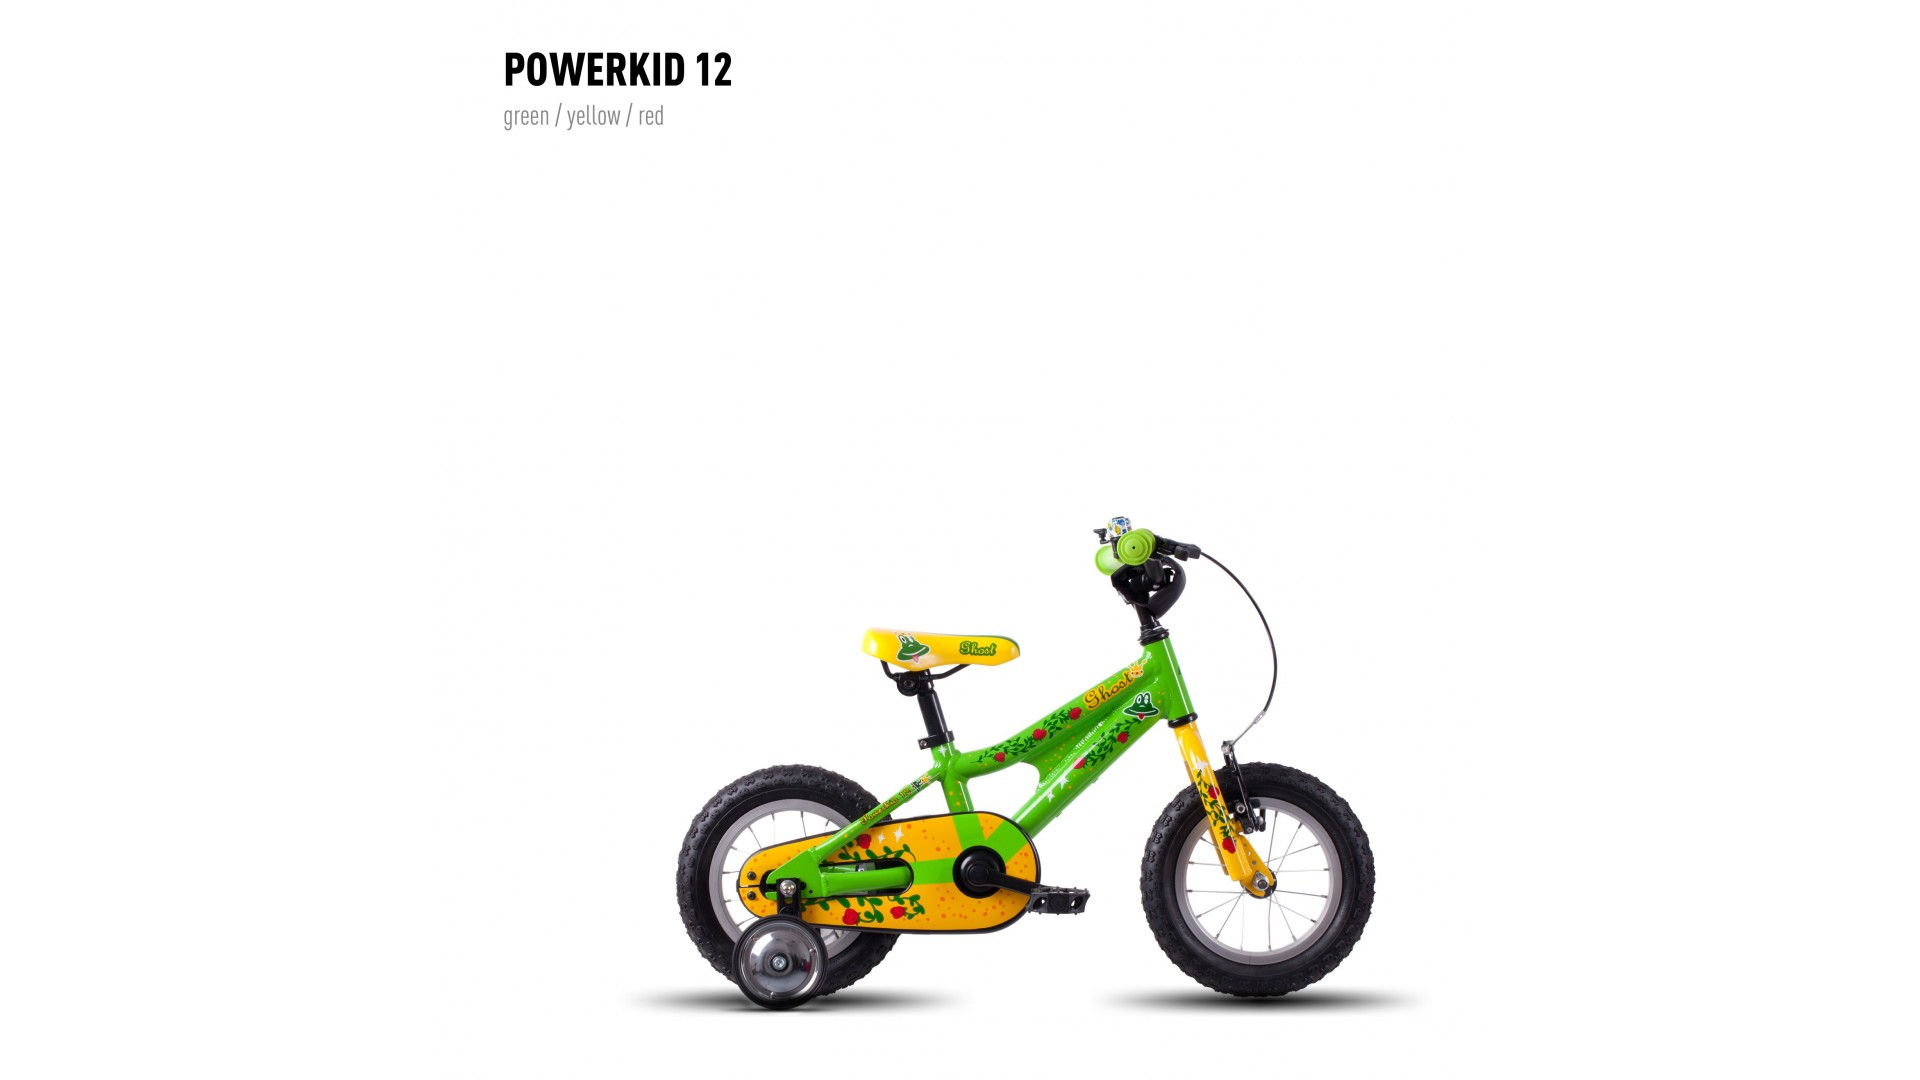 Велосипед GHOST Powerkiddy 12 green/yellow/red год 2016